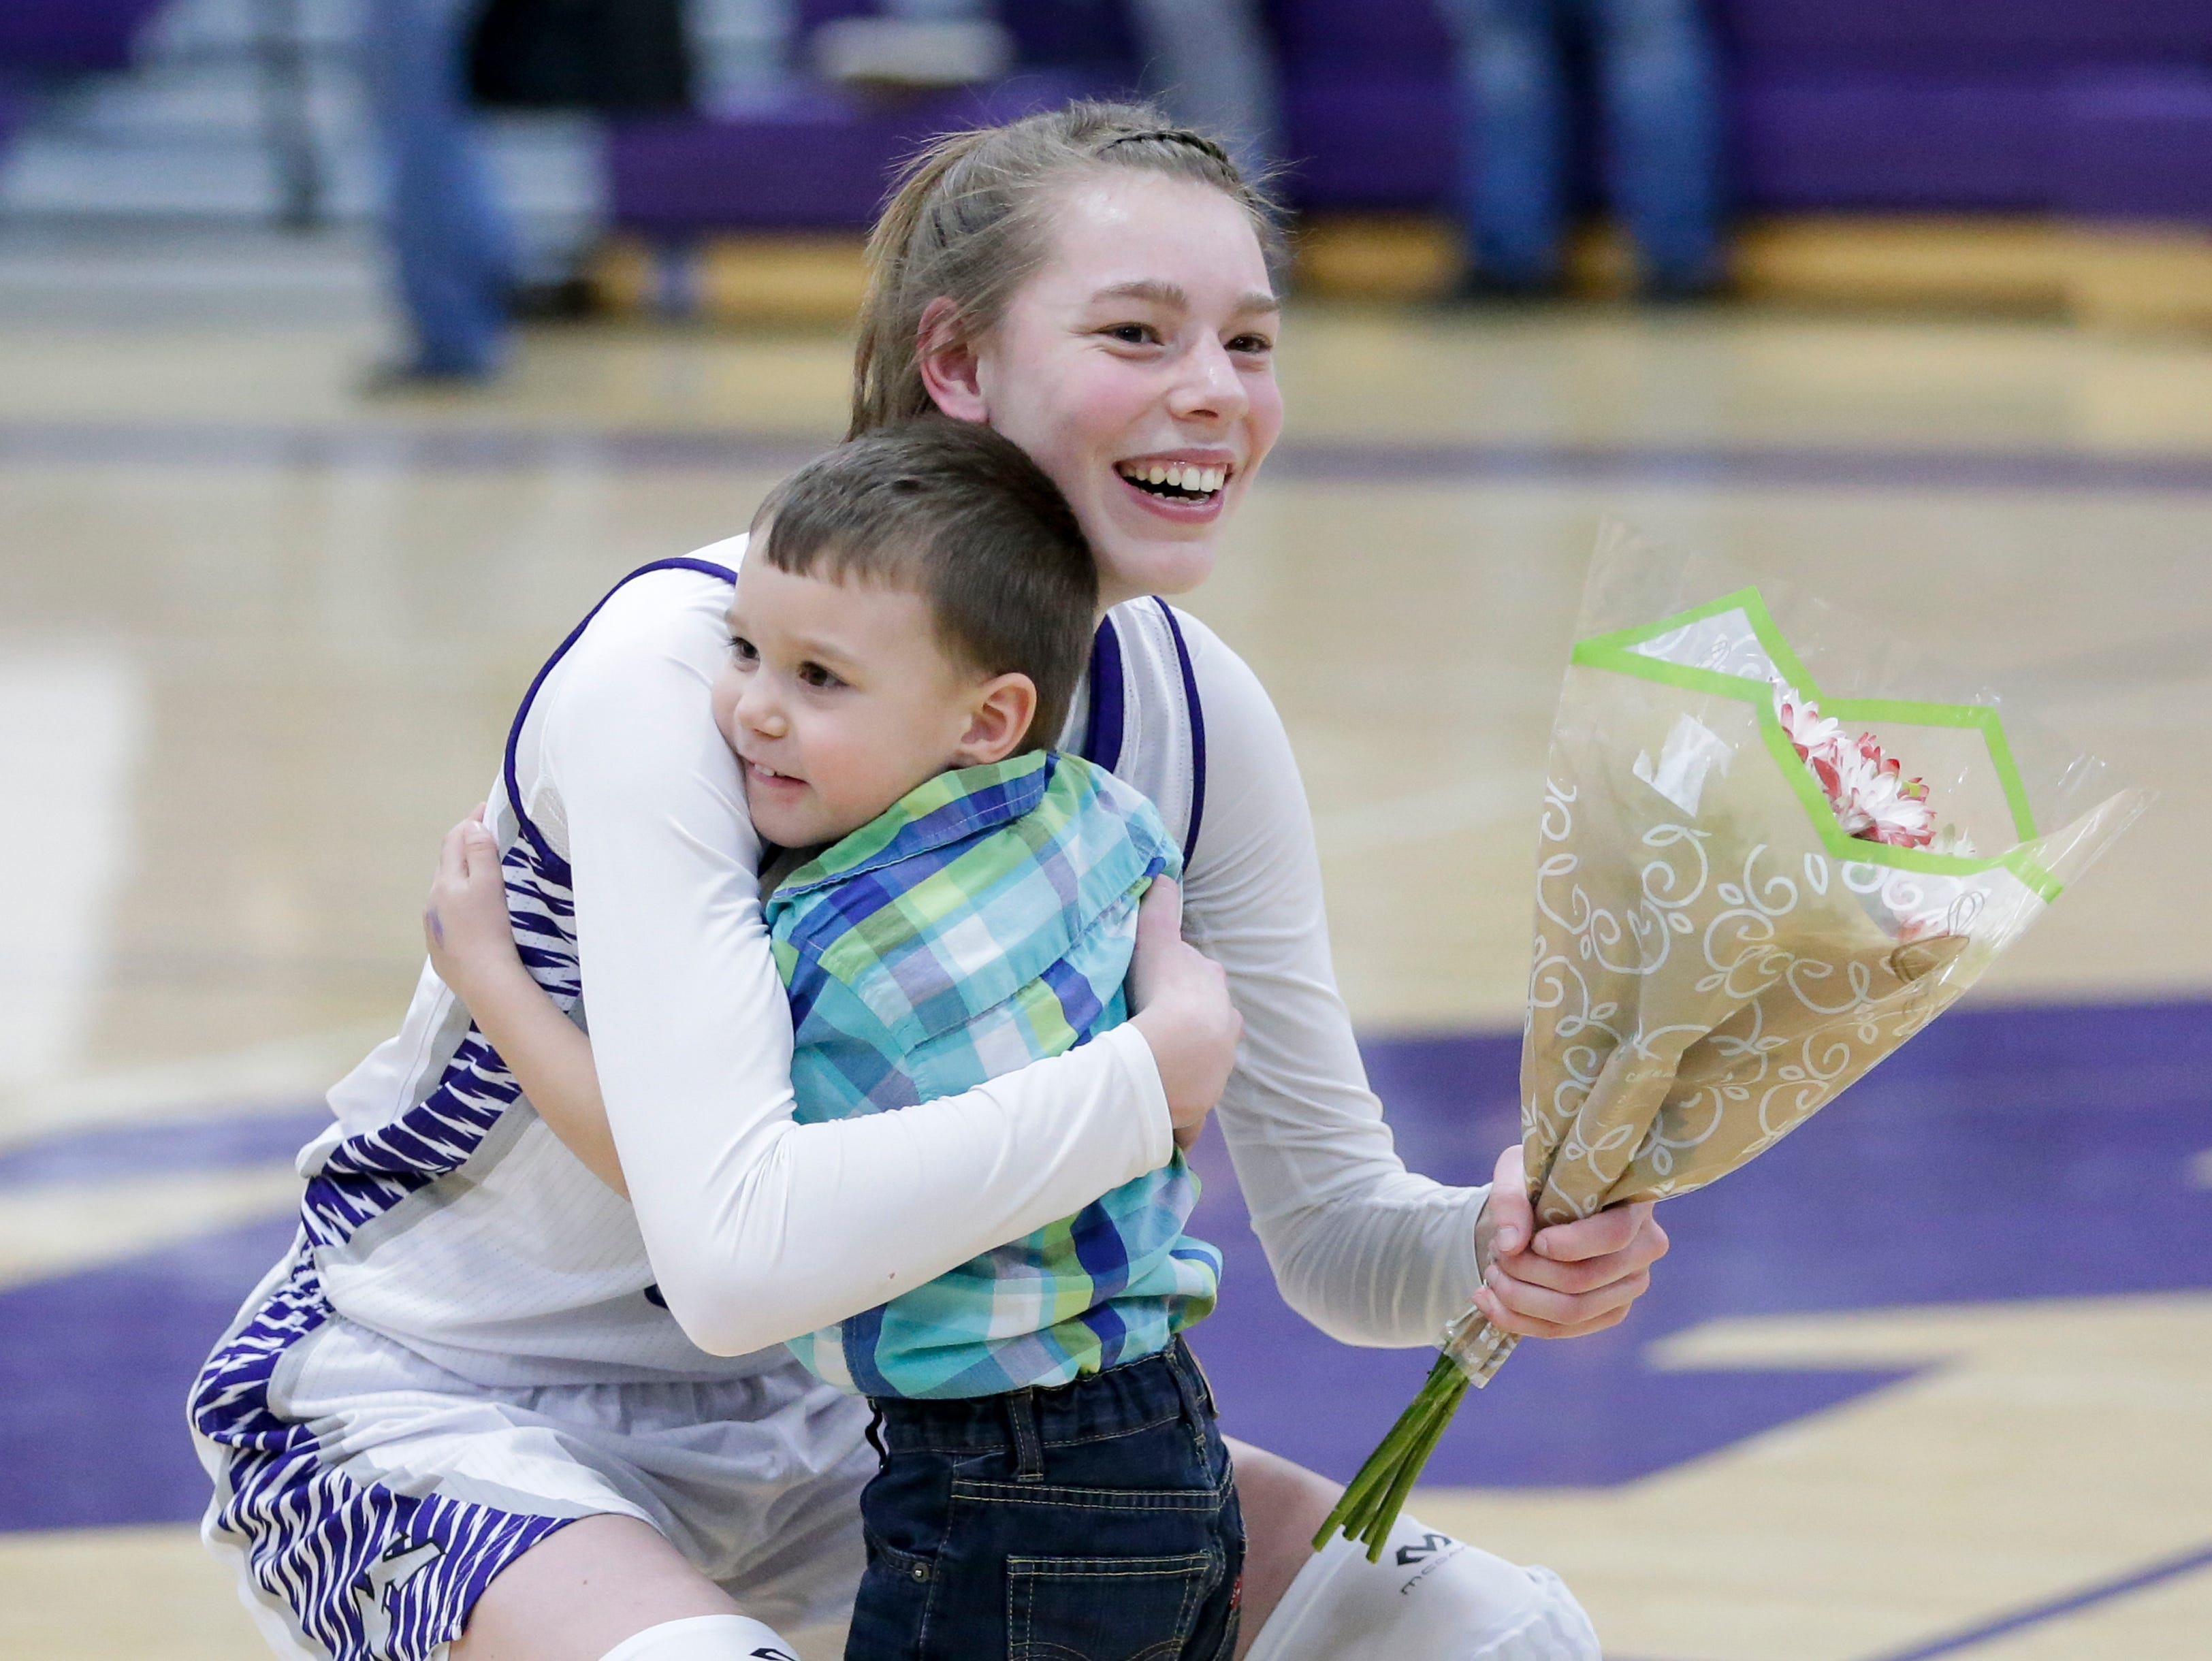 Kiel's Savannah Walsdorf (14) gets a hug from her coach's son Jaxon Bushman as she is recognized for being the Raiders' first girl basketball player to join the 1,000 point club before an EWC matchup against Roncalli at Kiel High School Thursday, January 17, 2019, in Kiel, Wis. Joshua Clark/USA TODAY NETWORK-Wisconsin